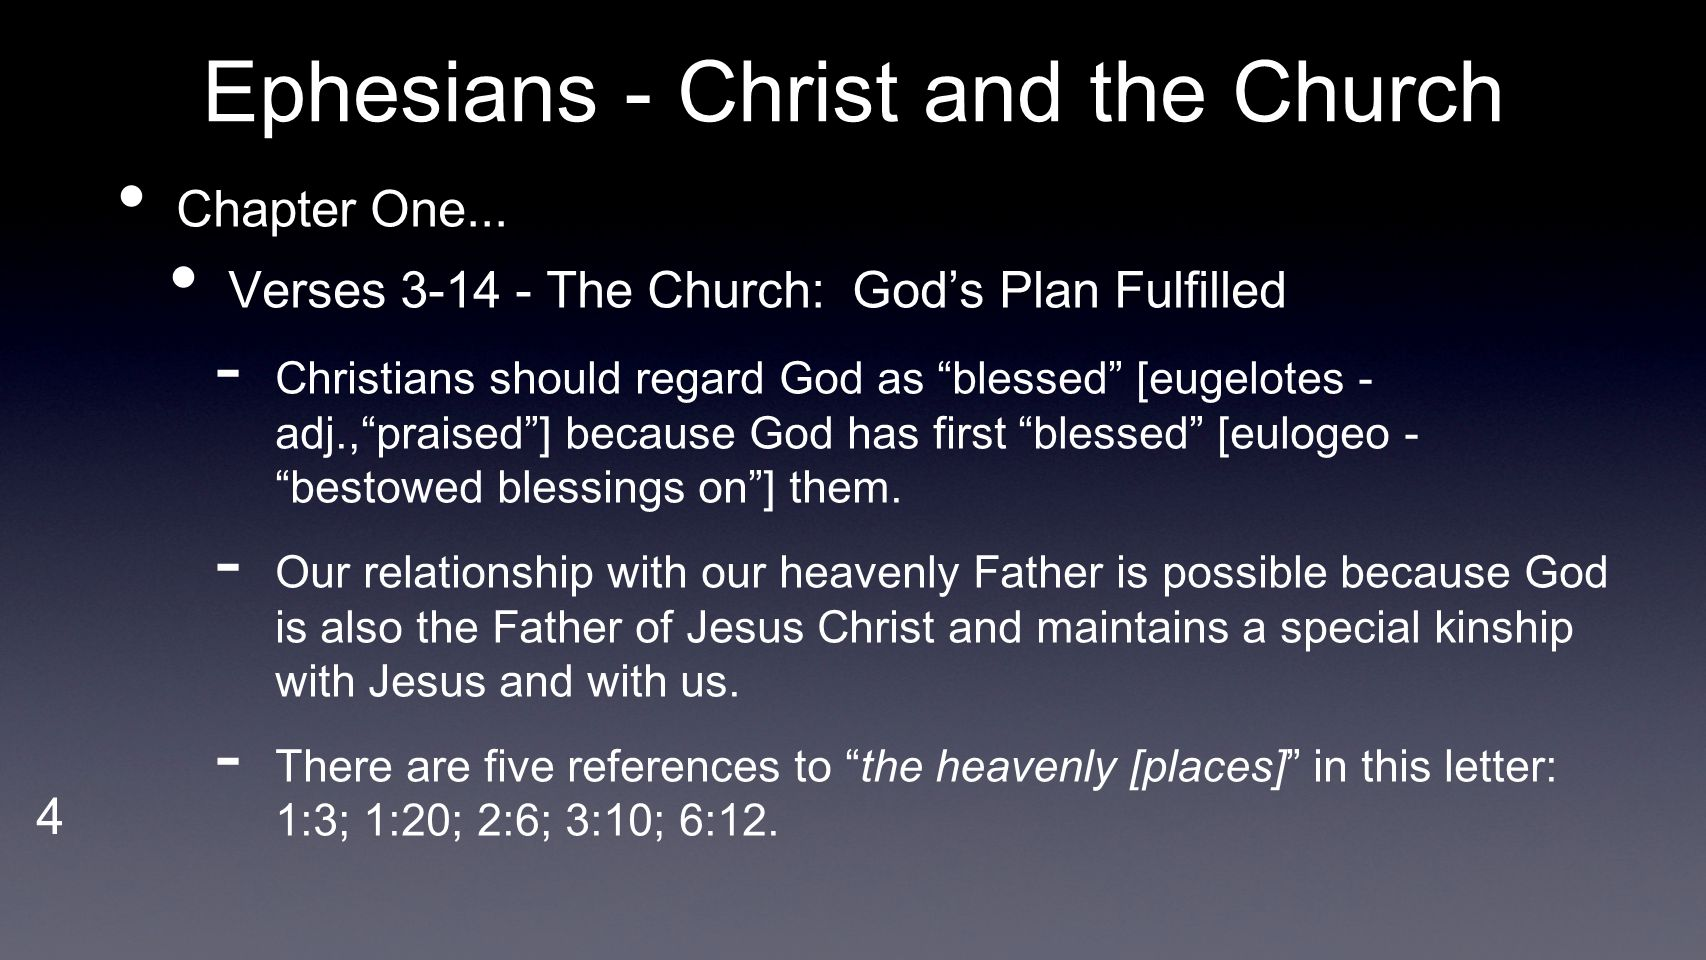 5 Ephesians - Christ and the Church Chapter One...